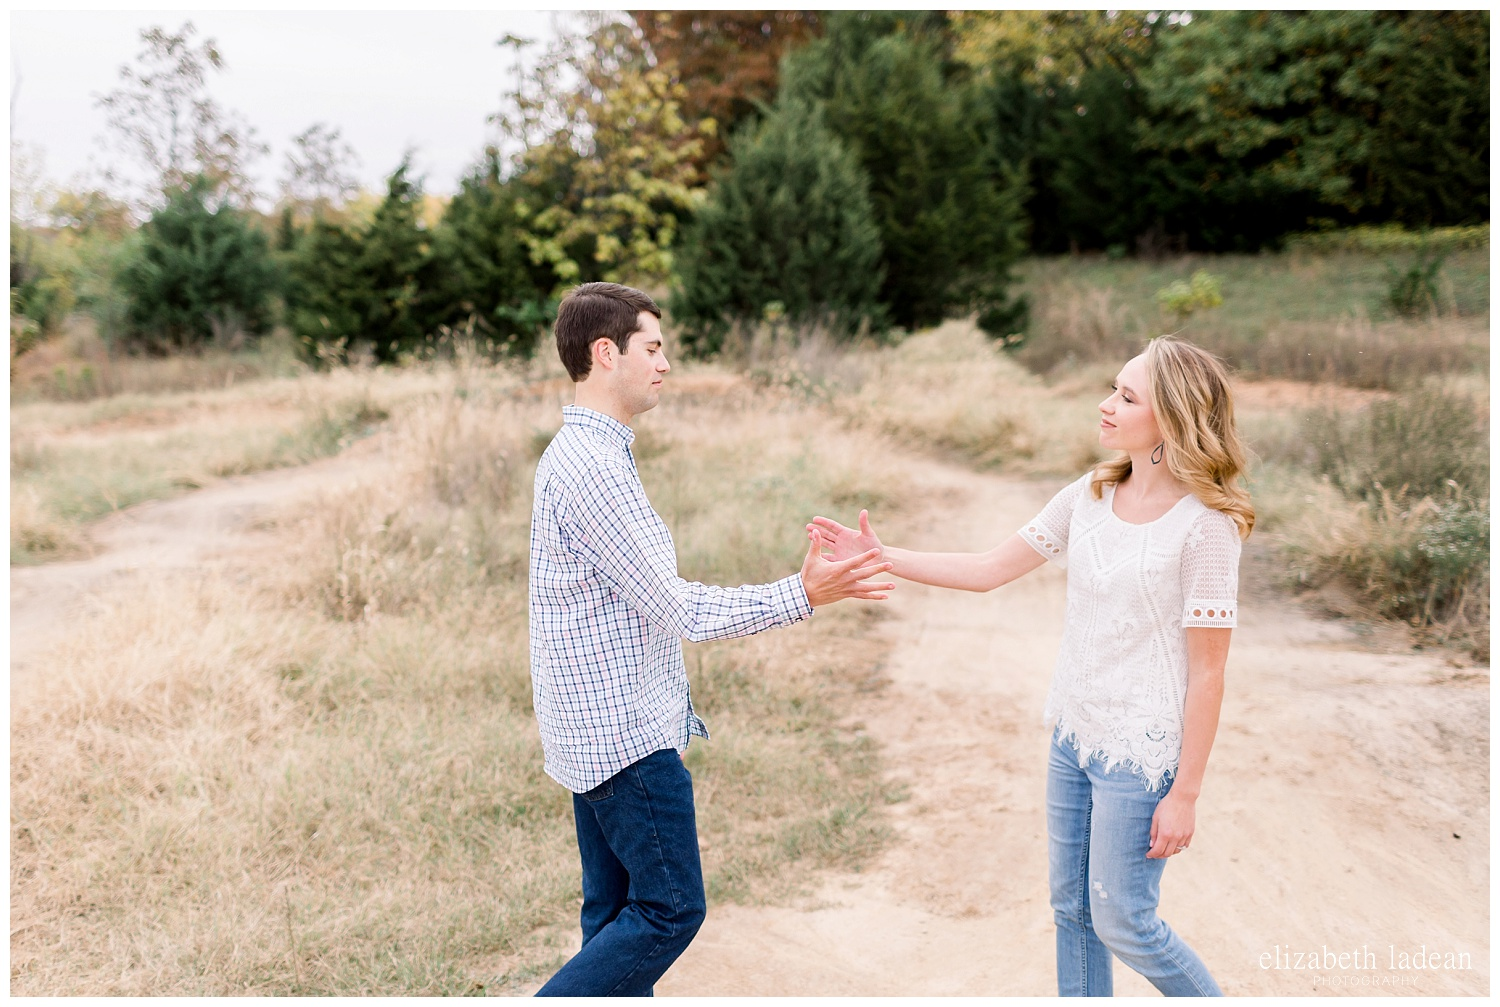 Colorful-Fall-Engagement-Photos-in-KC-C+B-2018-elizabeth-ladean-photography-photo_1788.jpg